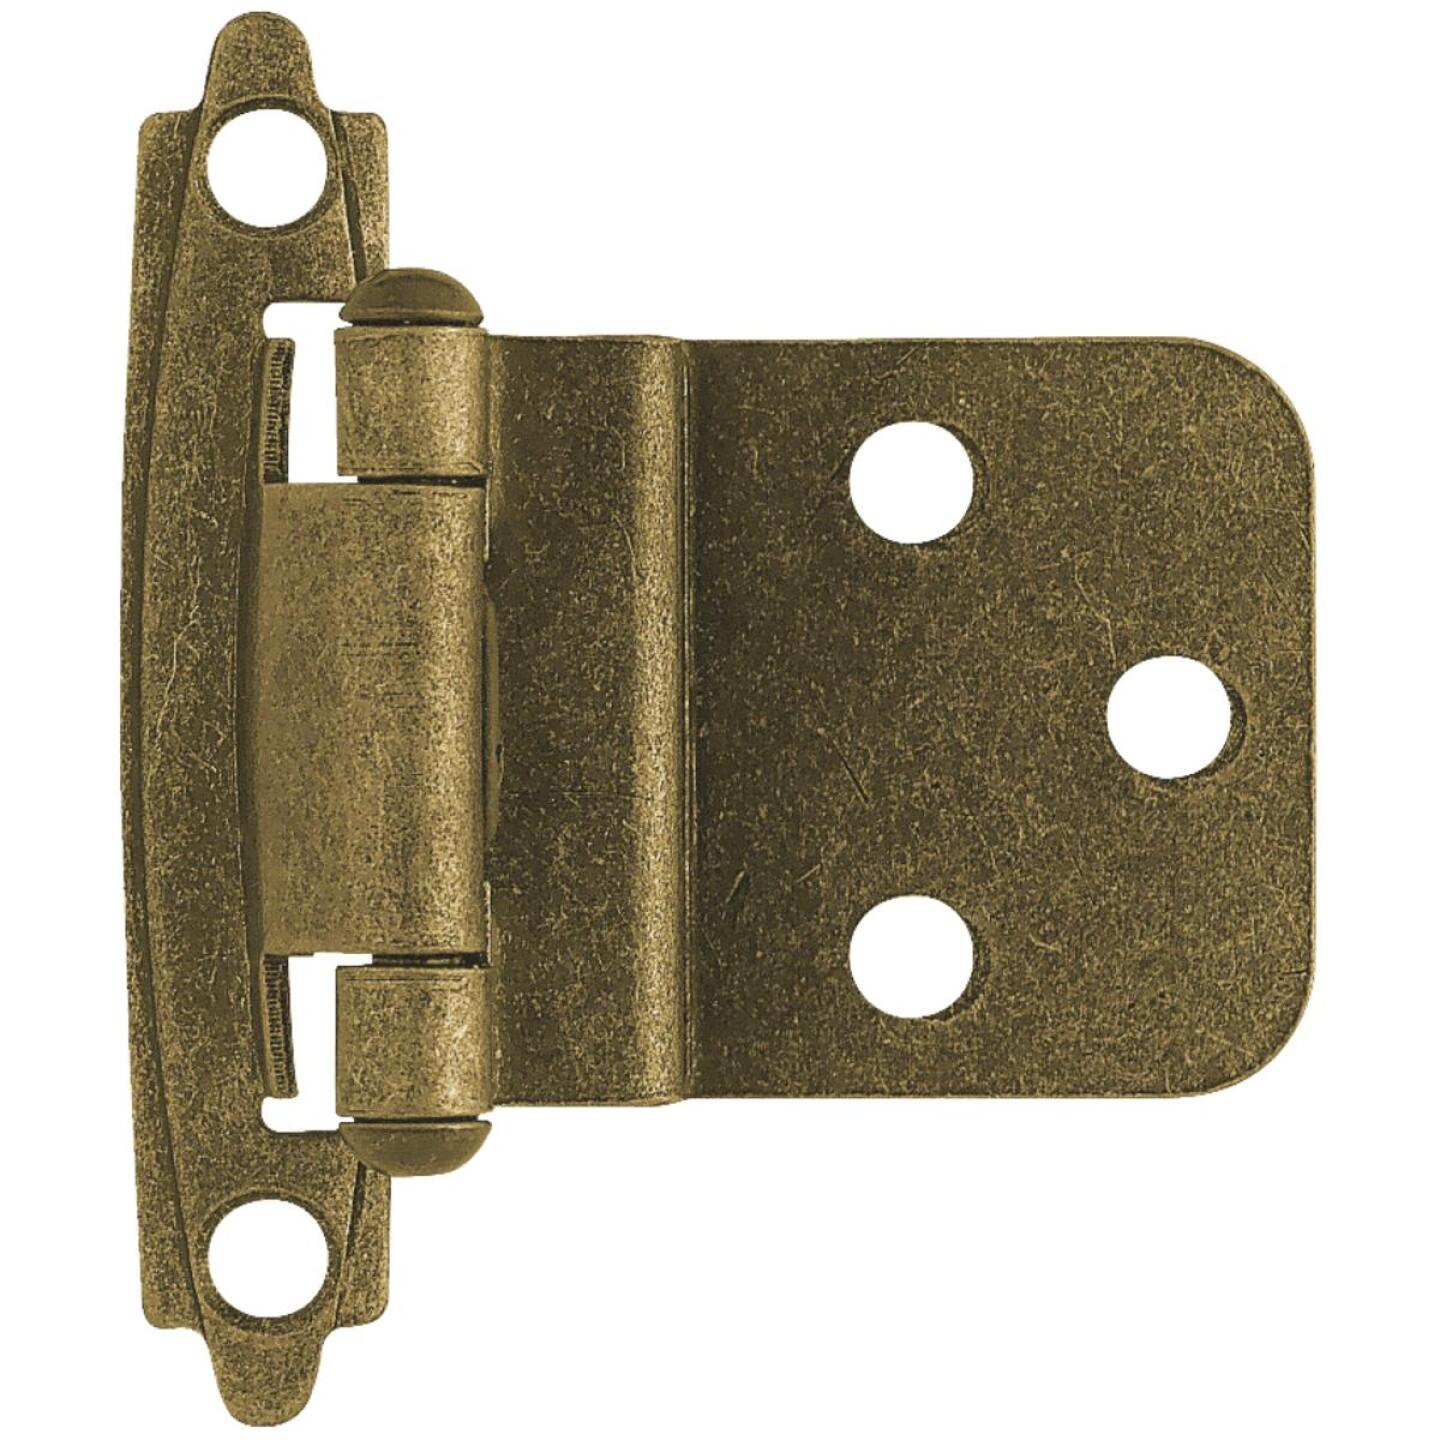 Liberty Burnished Antique Brass 3/8 In. Self-Closing Inset Hinge, (2-Pack) Image 1